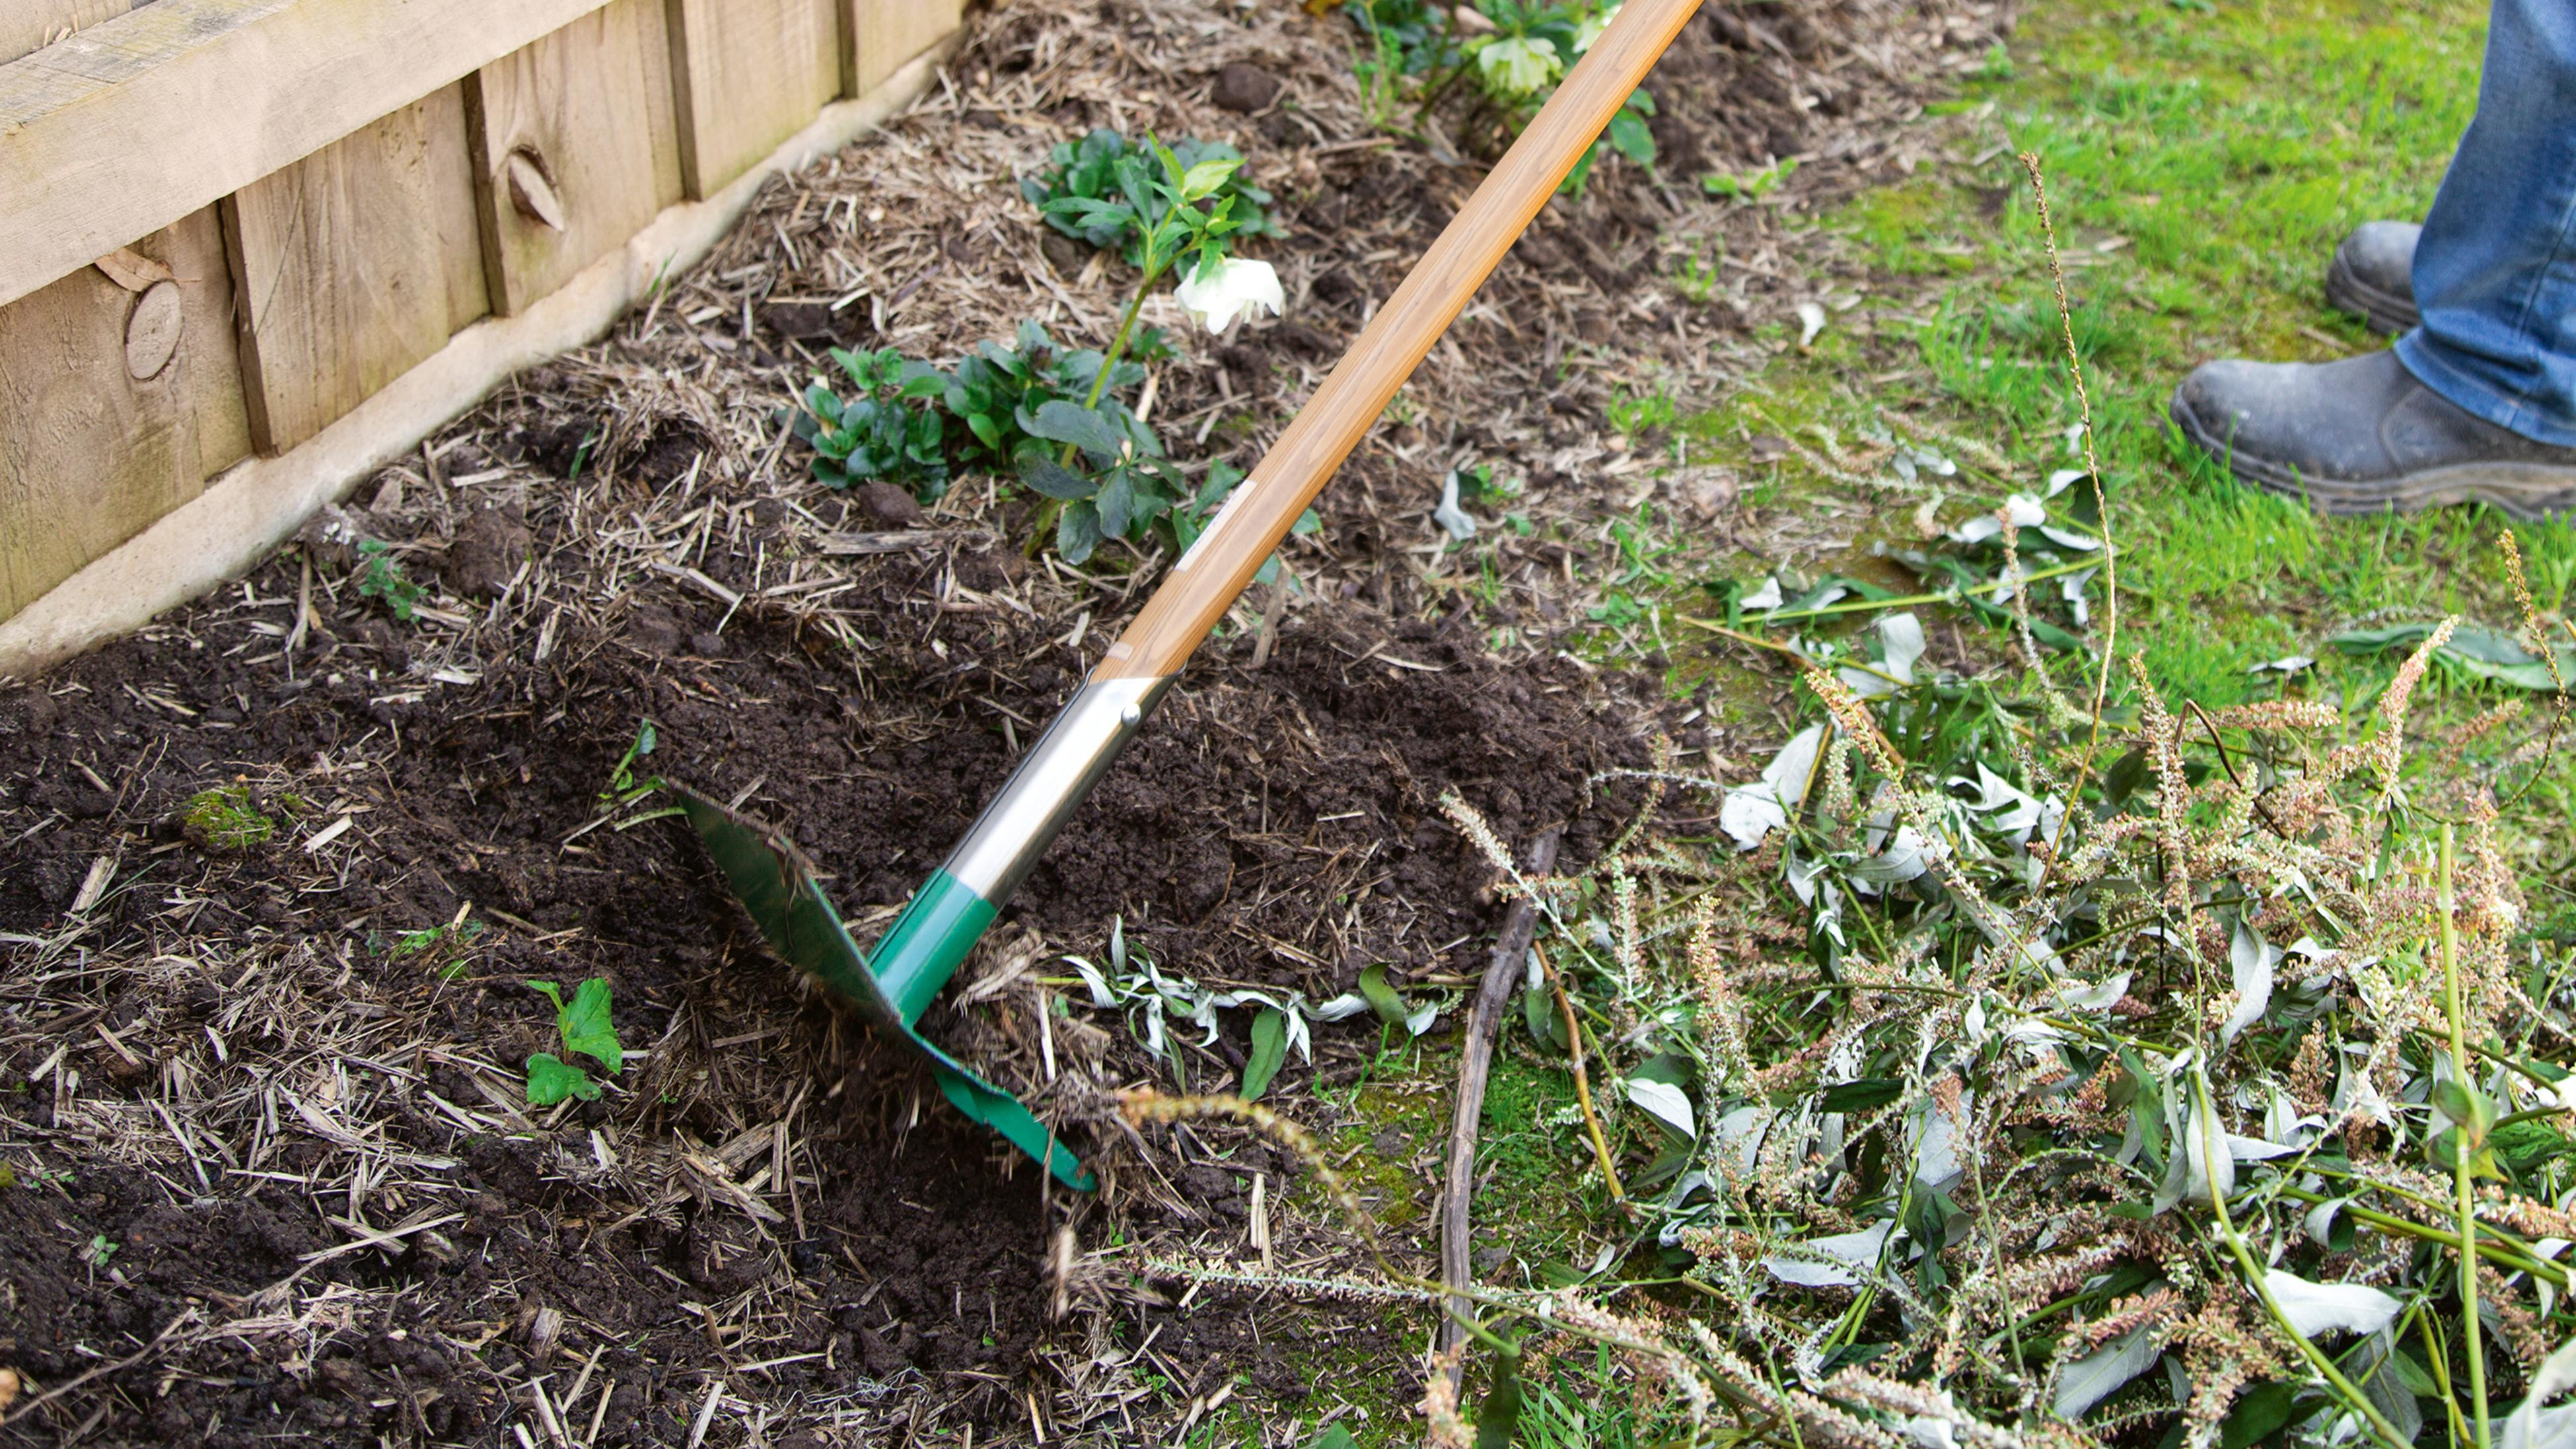 A person rakes their garden patch with a rake and hoe cultivator